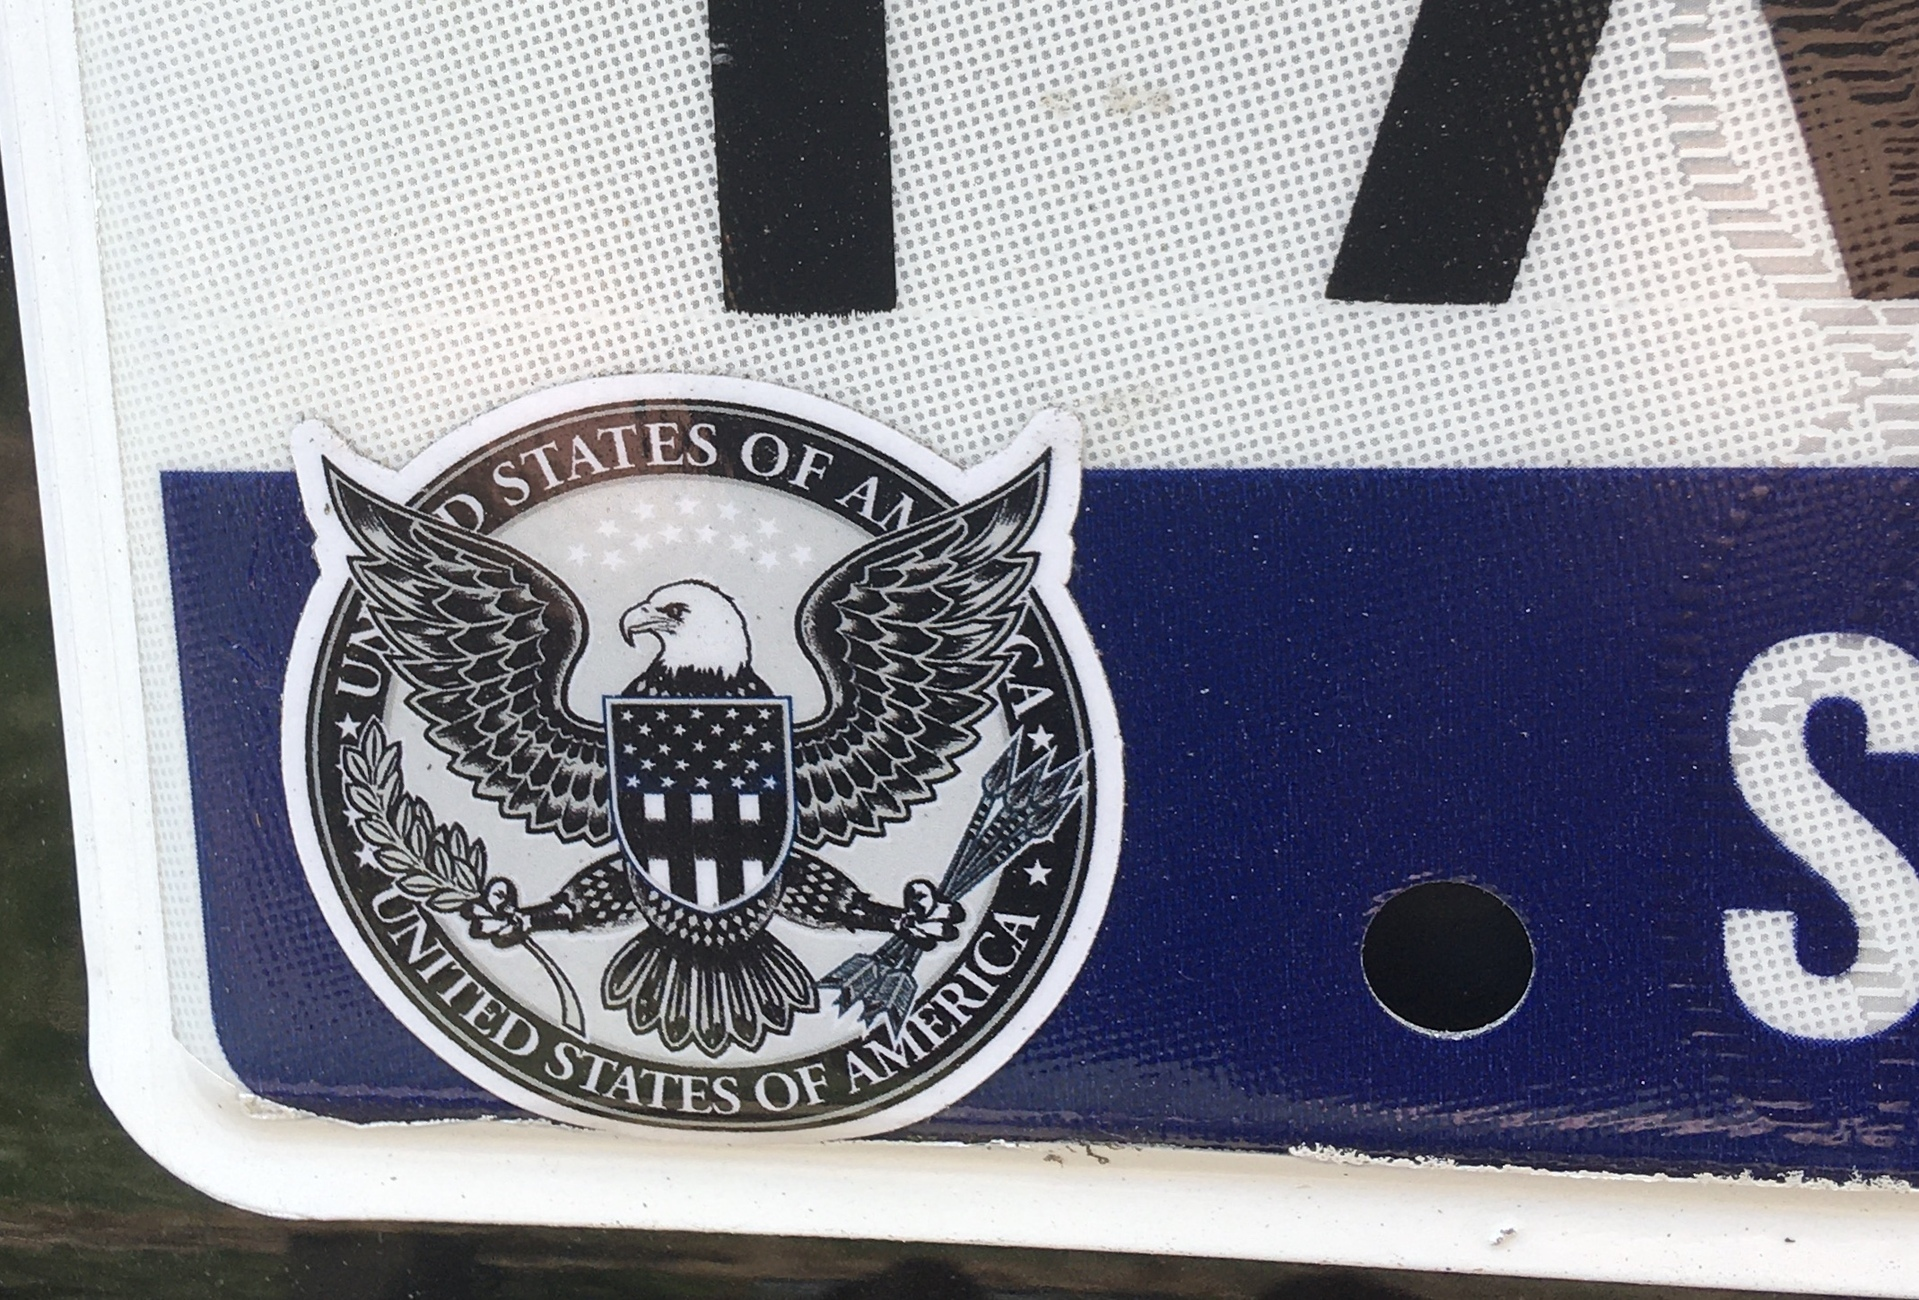 GreGory's photograph of their Jeep Wave Sticker